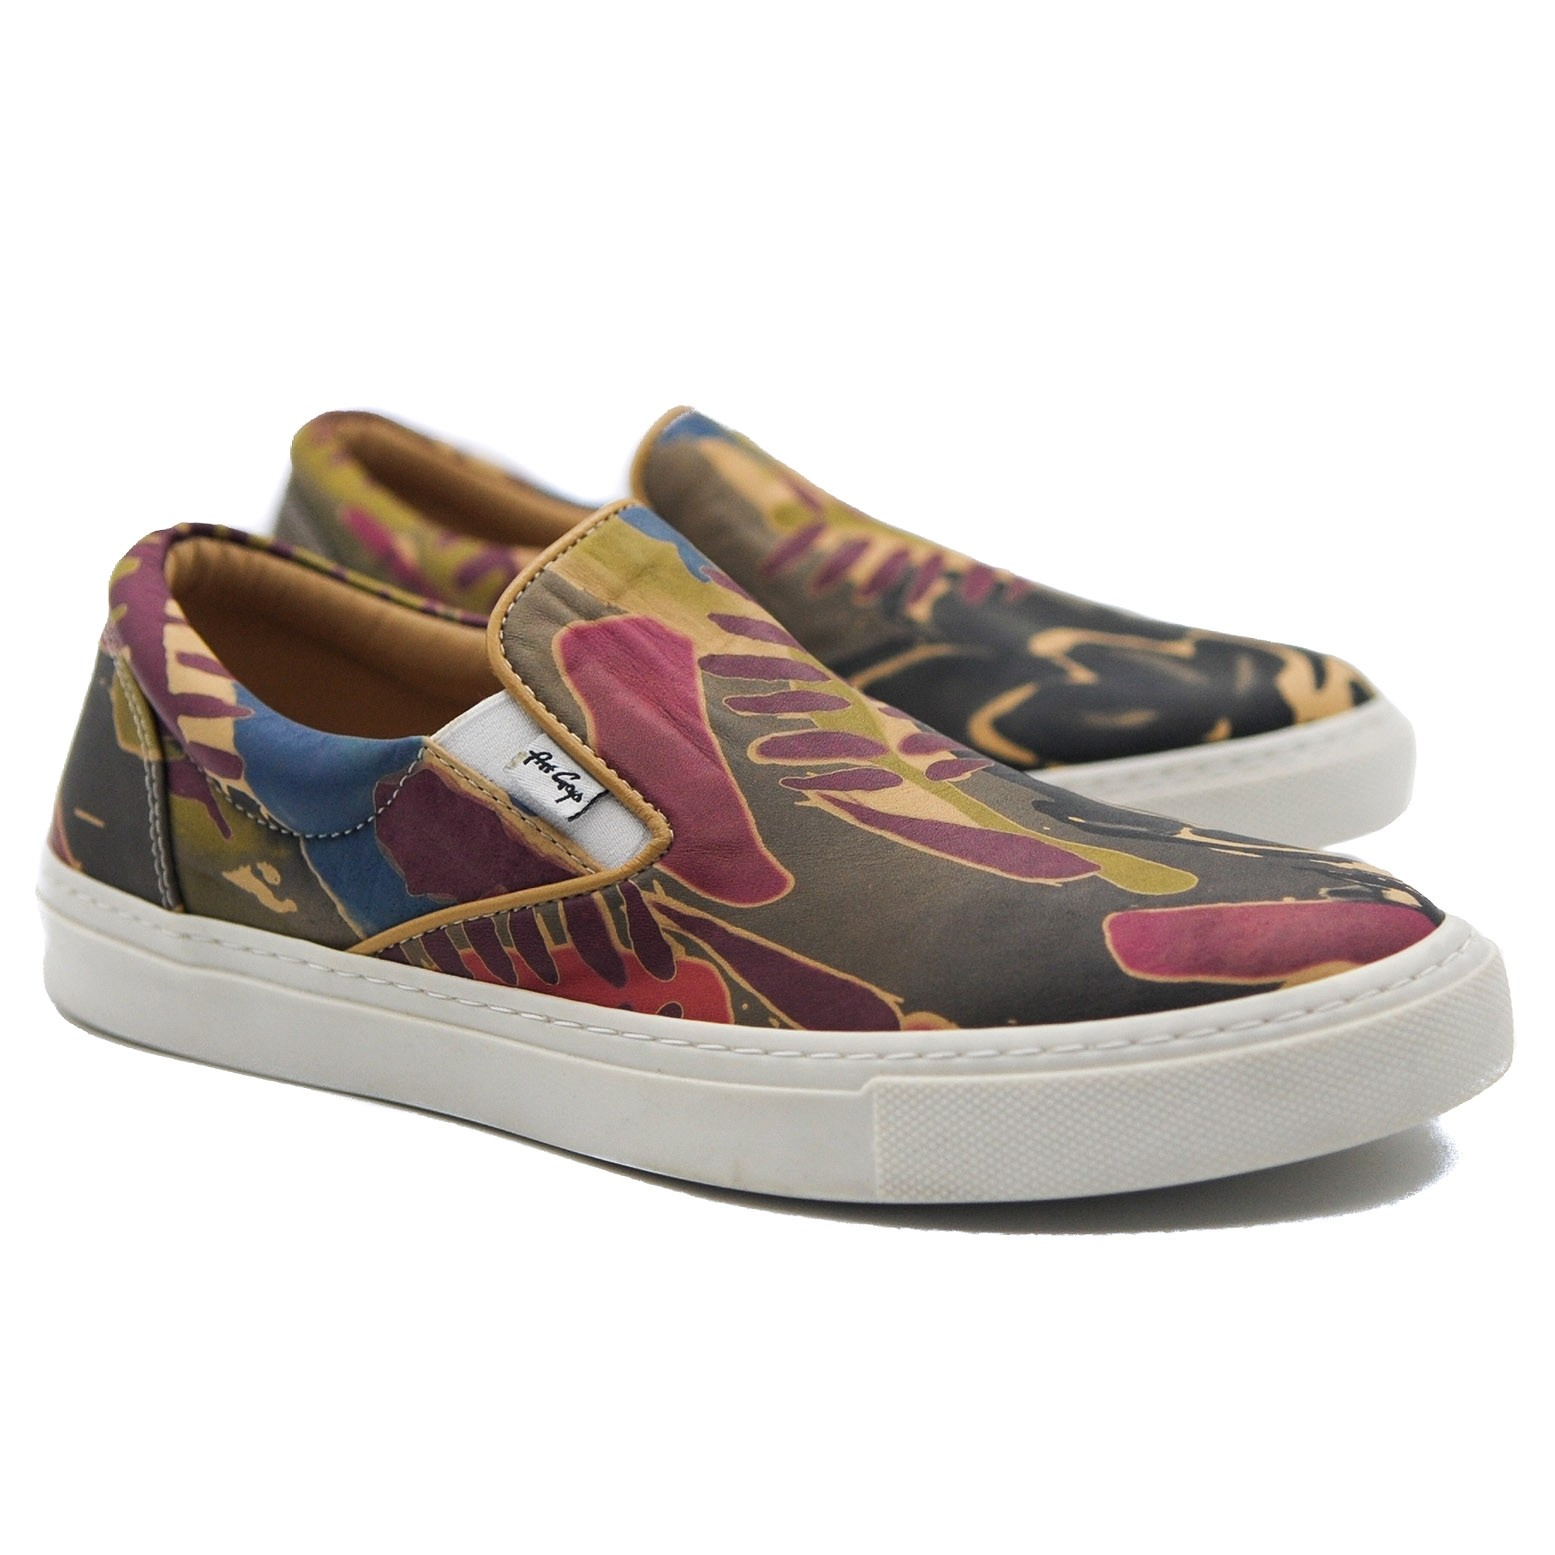 Art Goya Ladies Multi Coloured Jungle Design Leather Low Skate Slip On Shoes